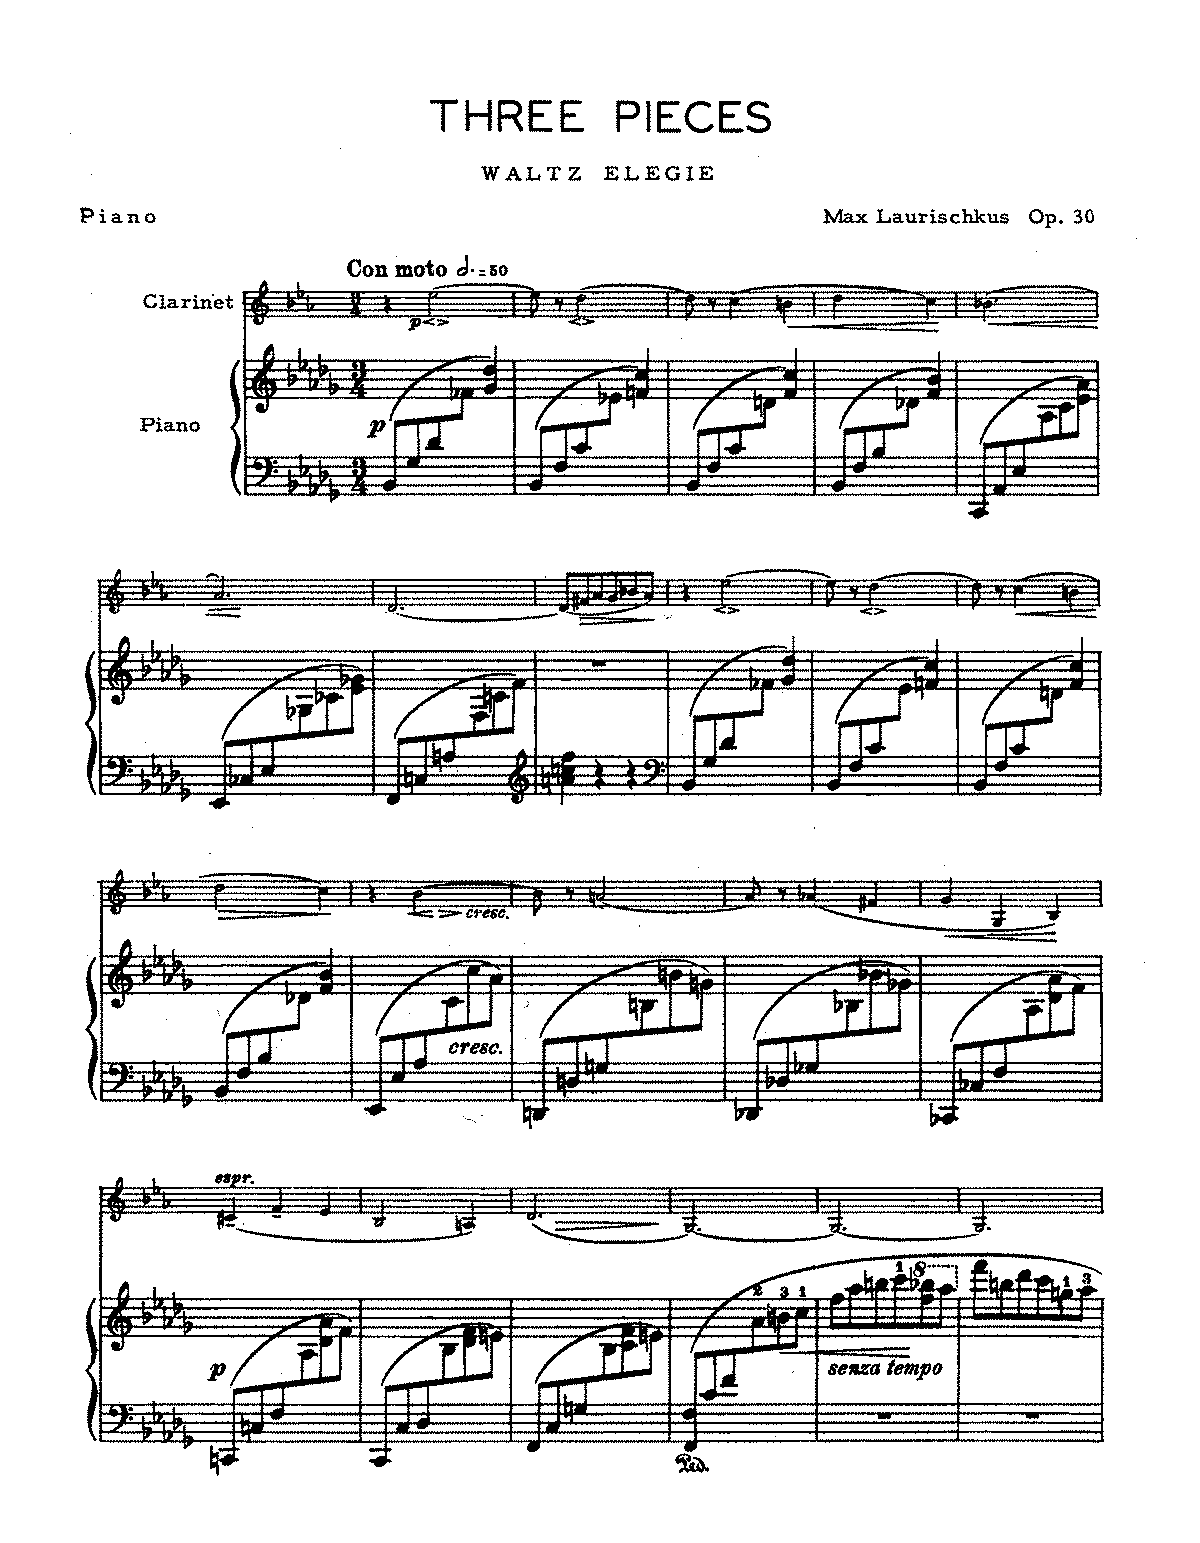 PMLP466234-Laurischkus-3pieces-score.pdf